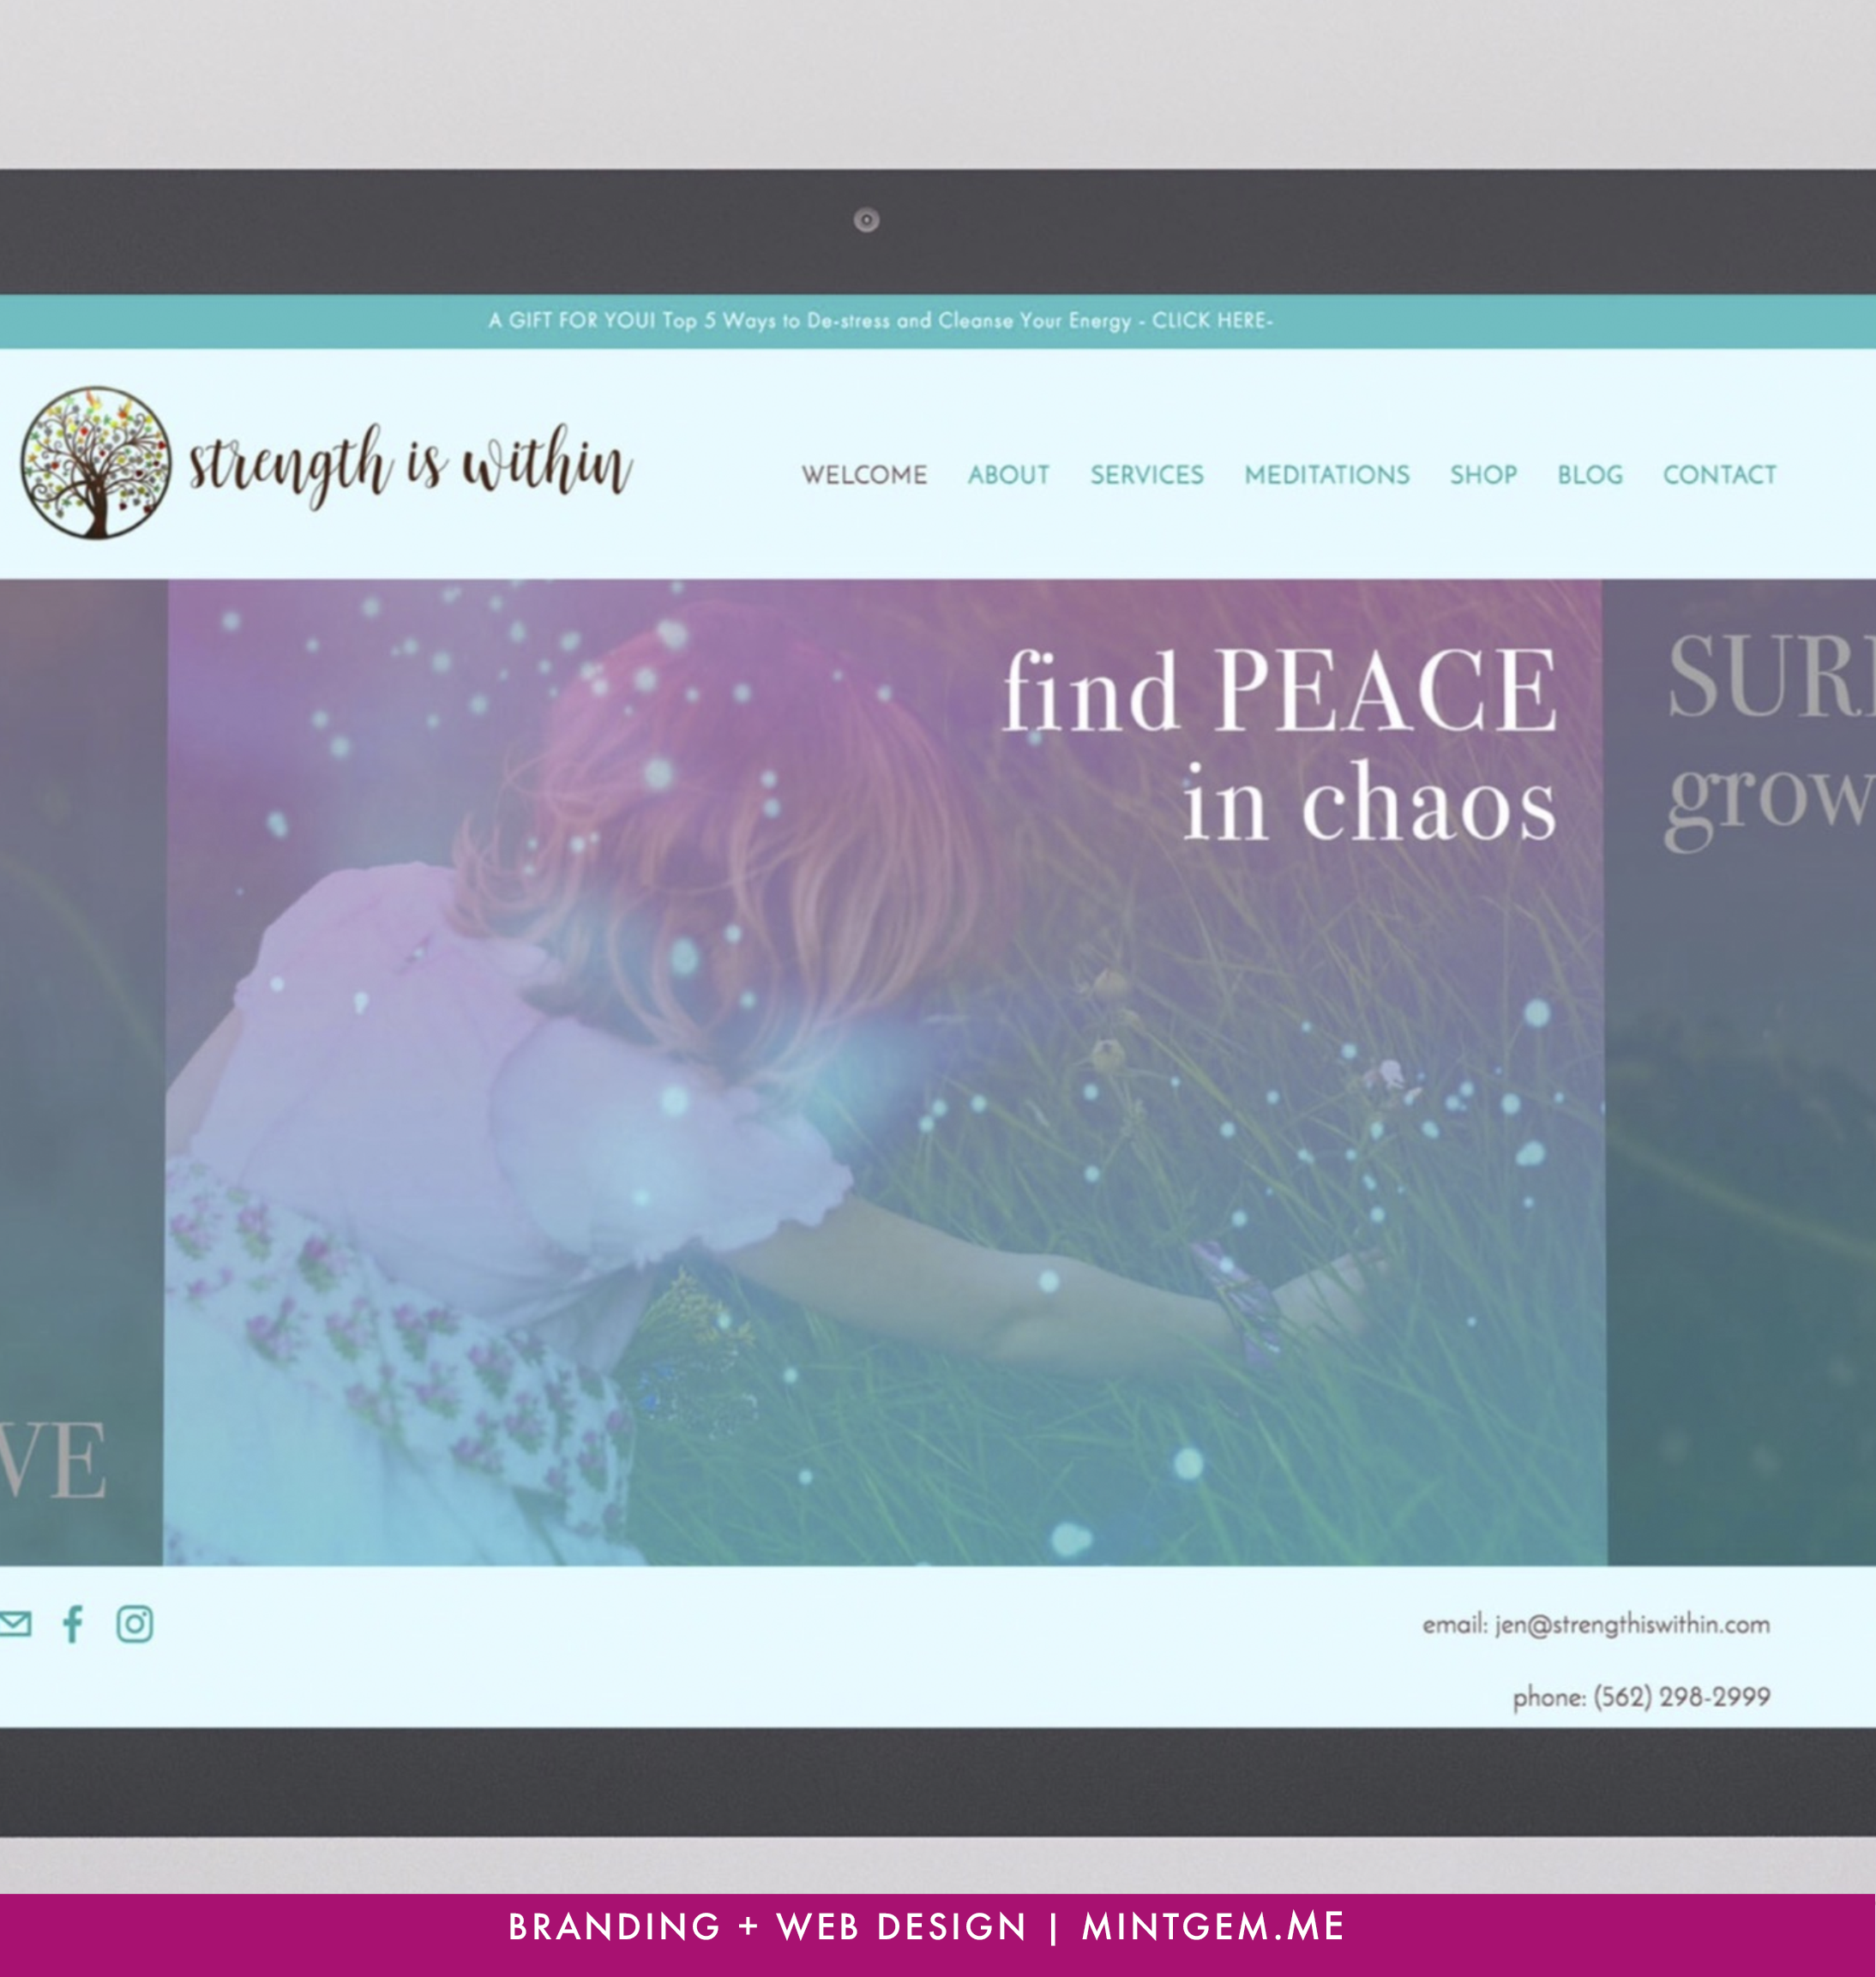 29-branding-mintgem-logo-design-for-SOULFUL-coaches-women-in-business.png